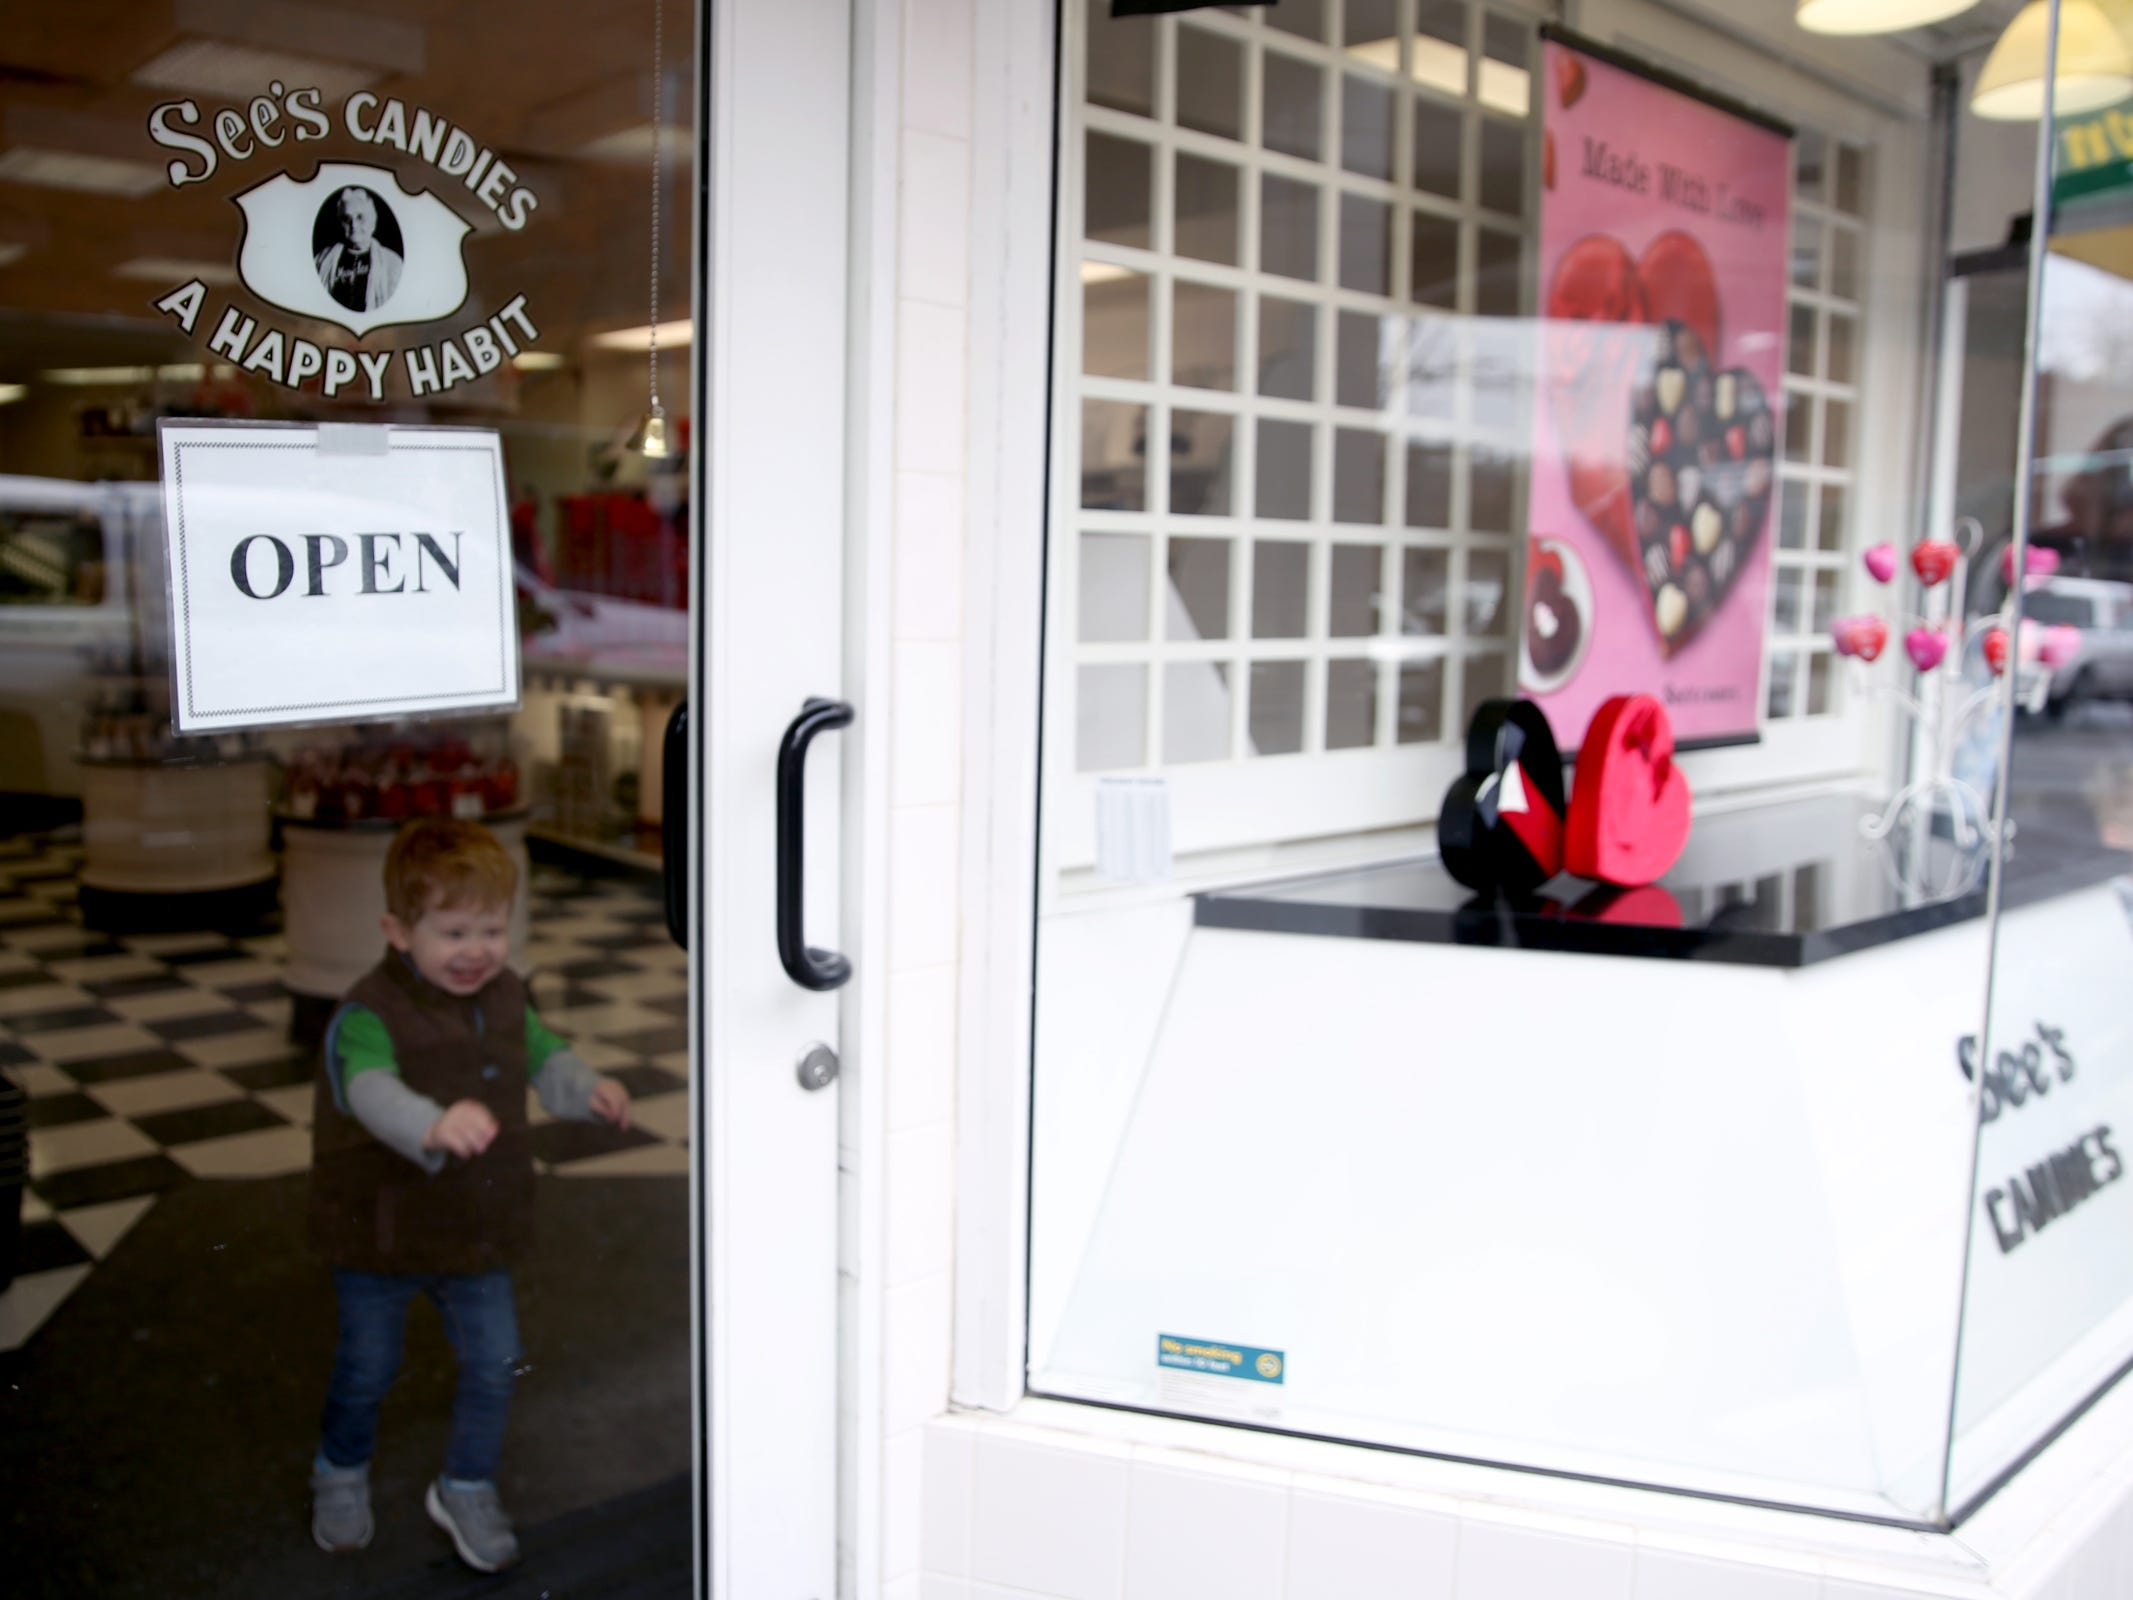 C.J. Wells, 2, of Salem, visits See's Candies in downtown Salem on Tuesday, Feb. 5, 2019.